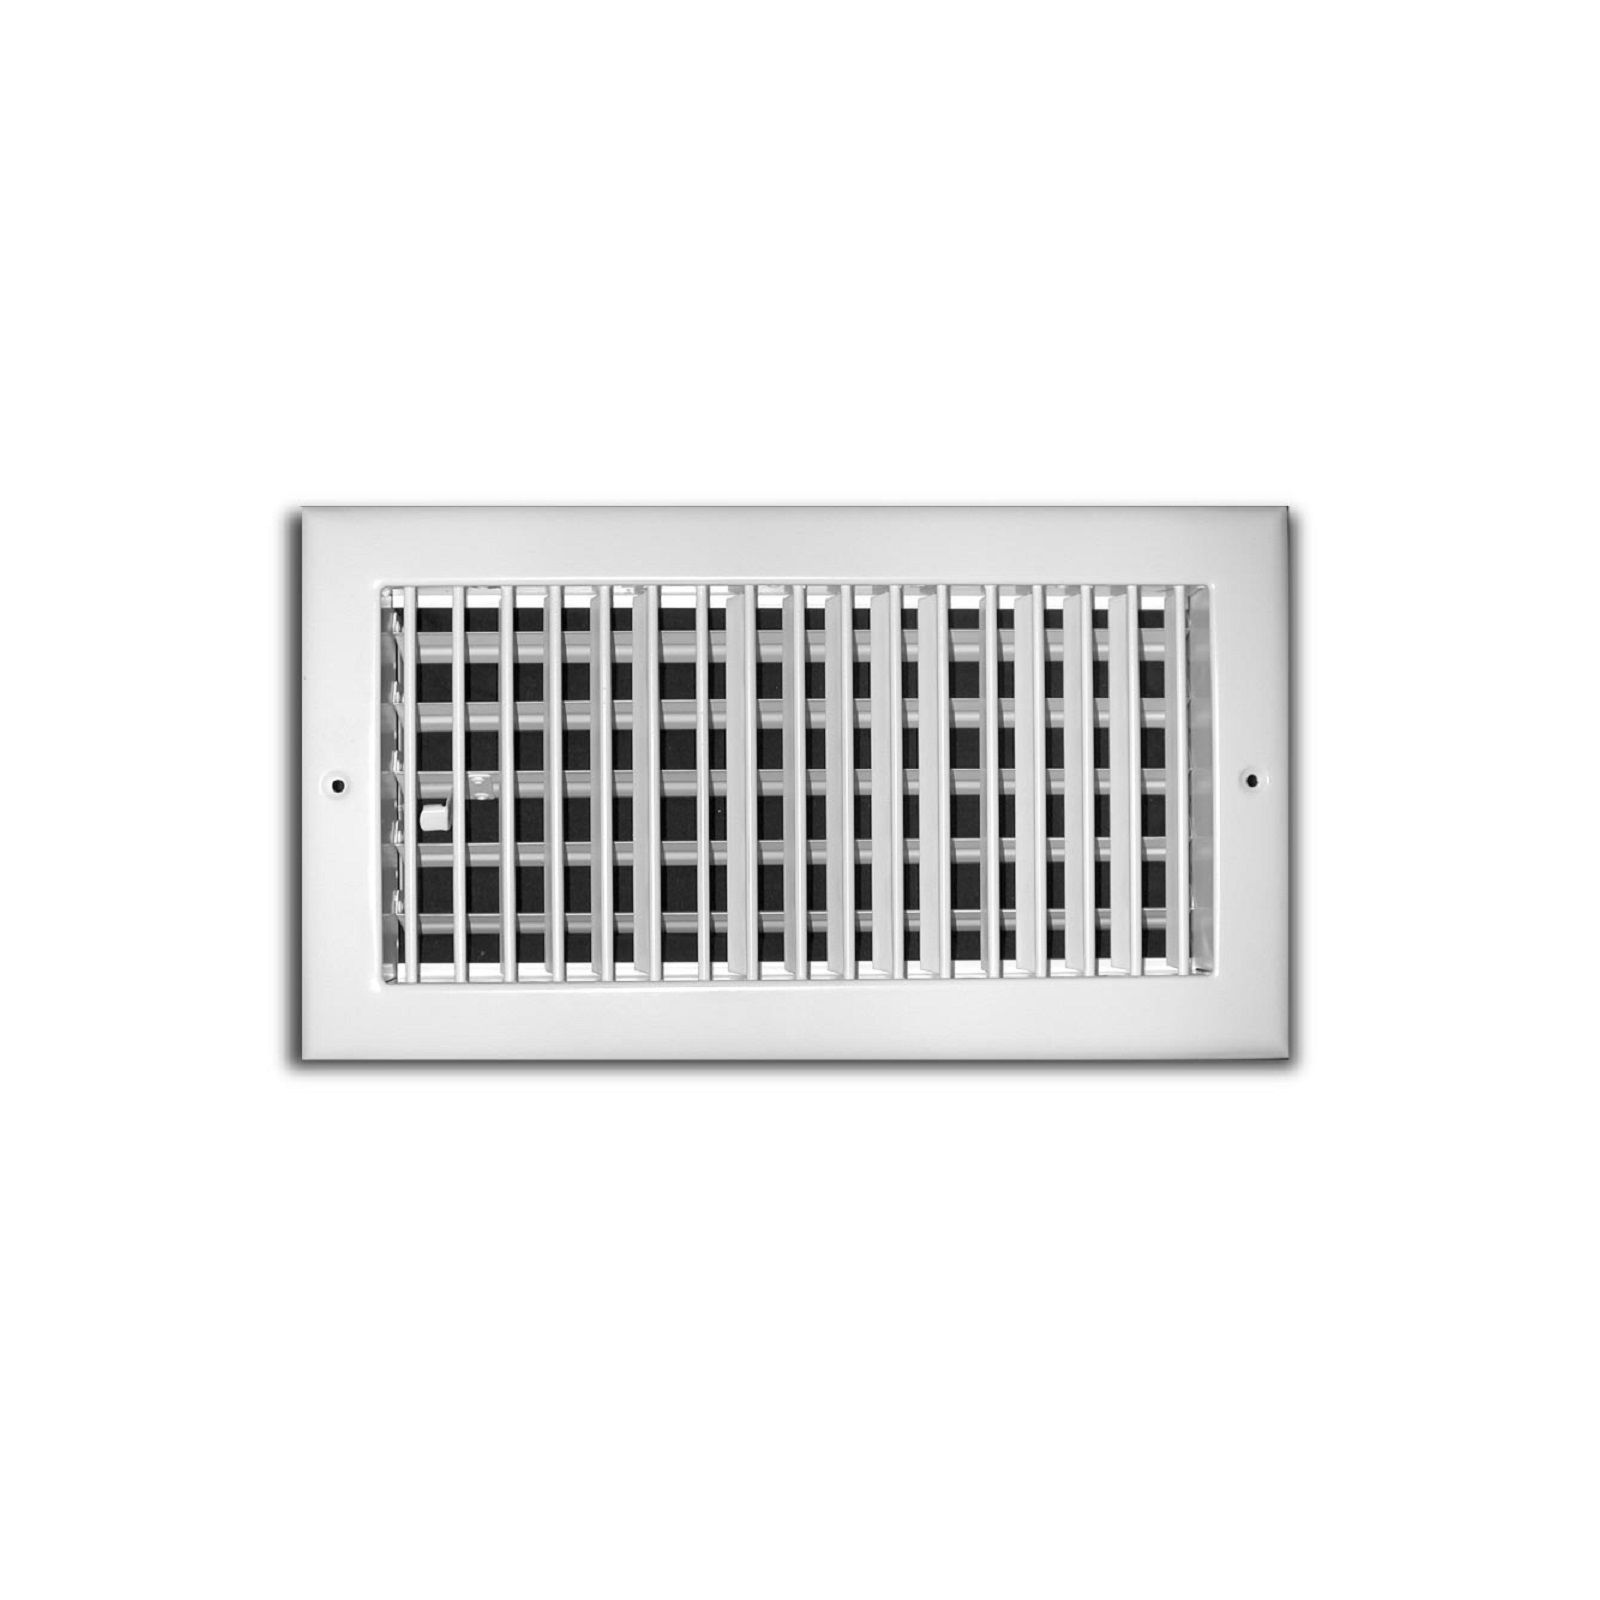 "TRUaire 210VM 20X06 - Steel Adjustable 1-Way Wall/Ceiling Register With Multi Shutter Damper, White, 20"" X 06"""